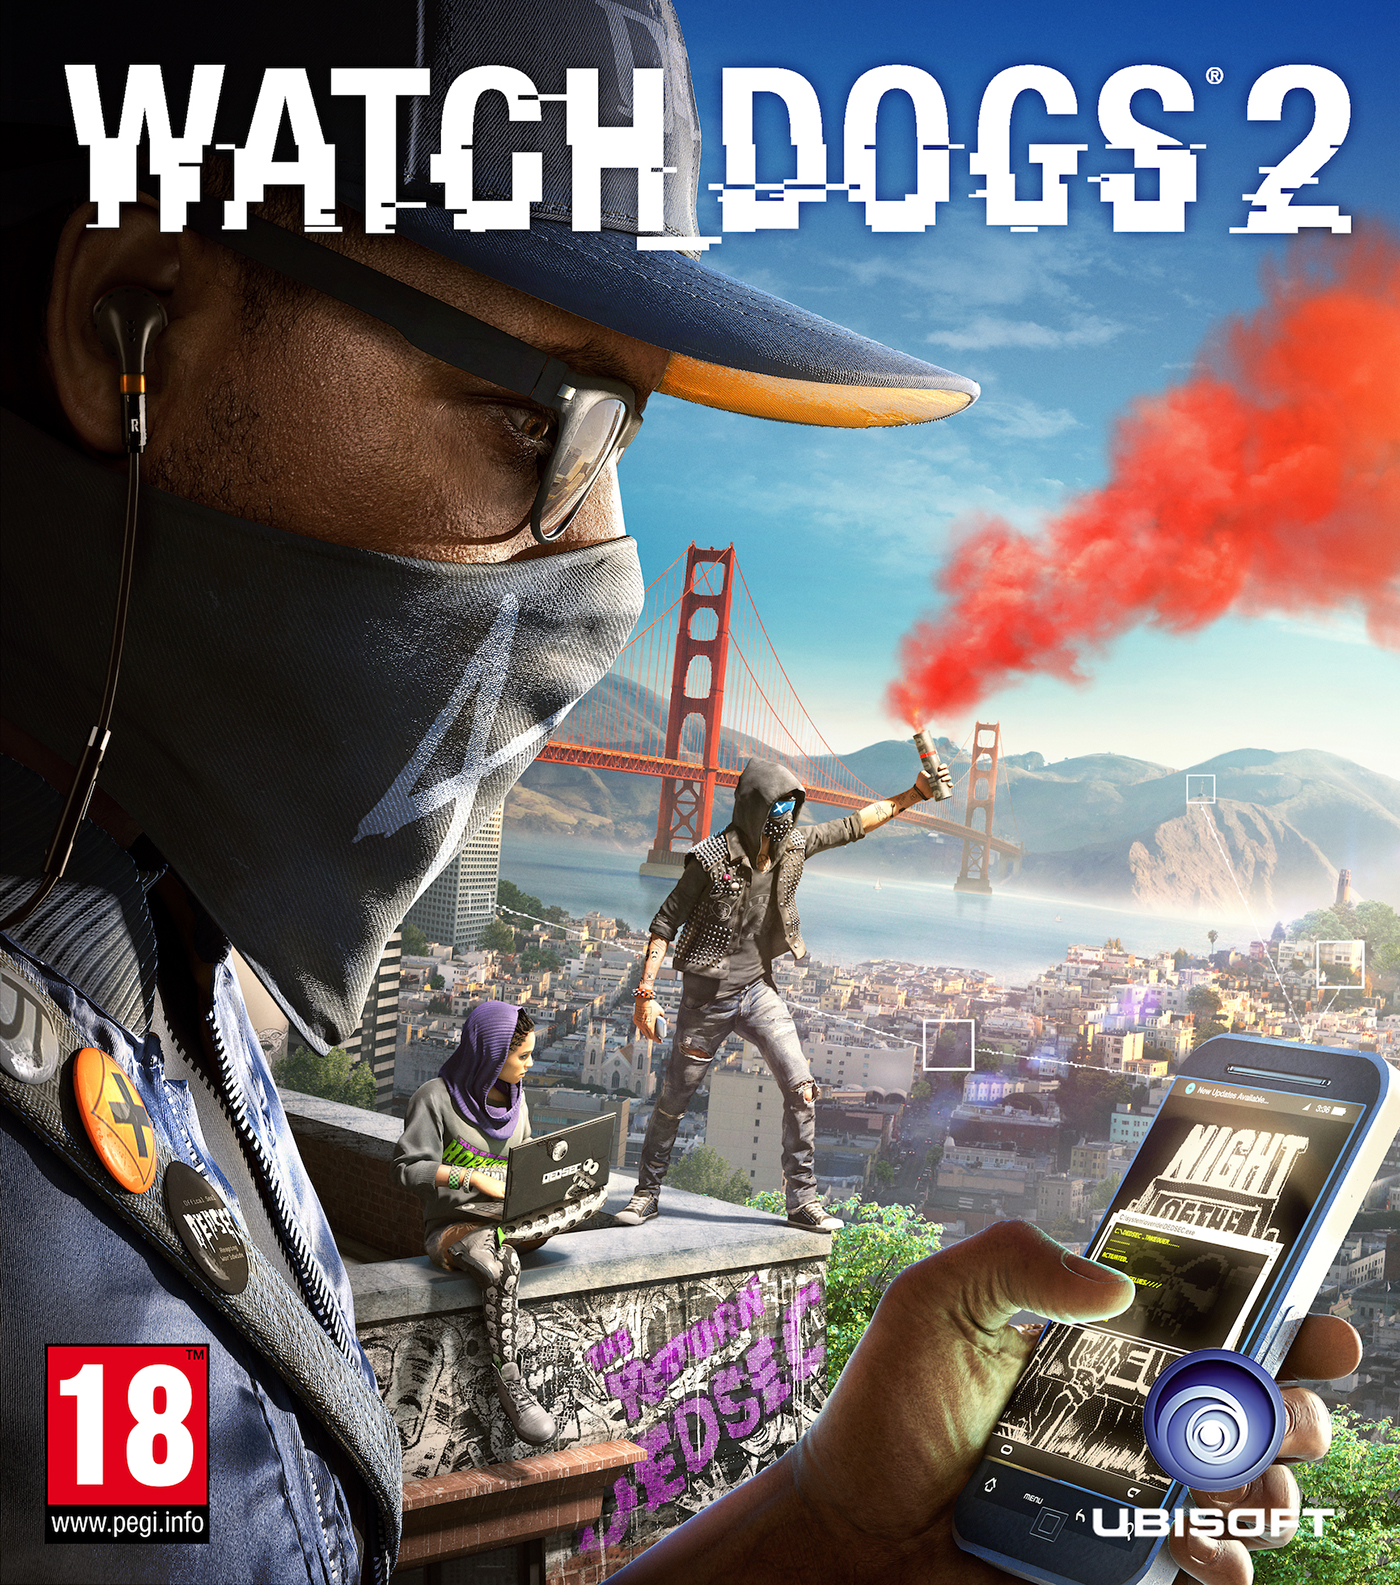 watch dogs,Watch Dogs 2,ubisoft,Pack,jeu video,videogame,game,video game,hacking,hacker,marcus